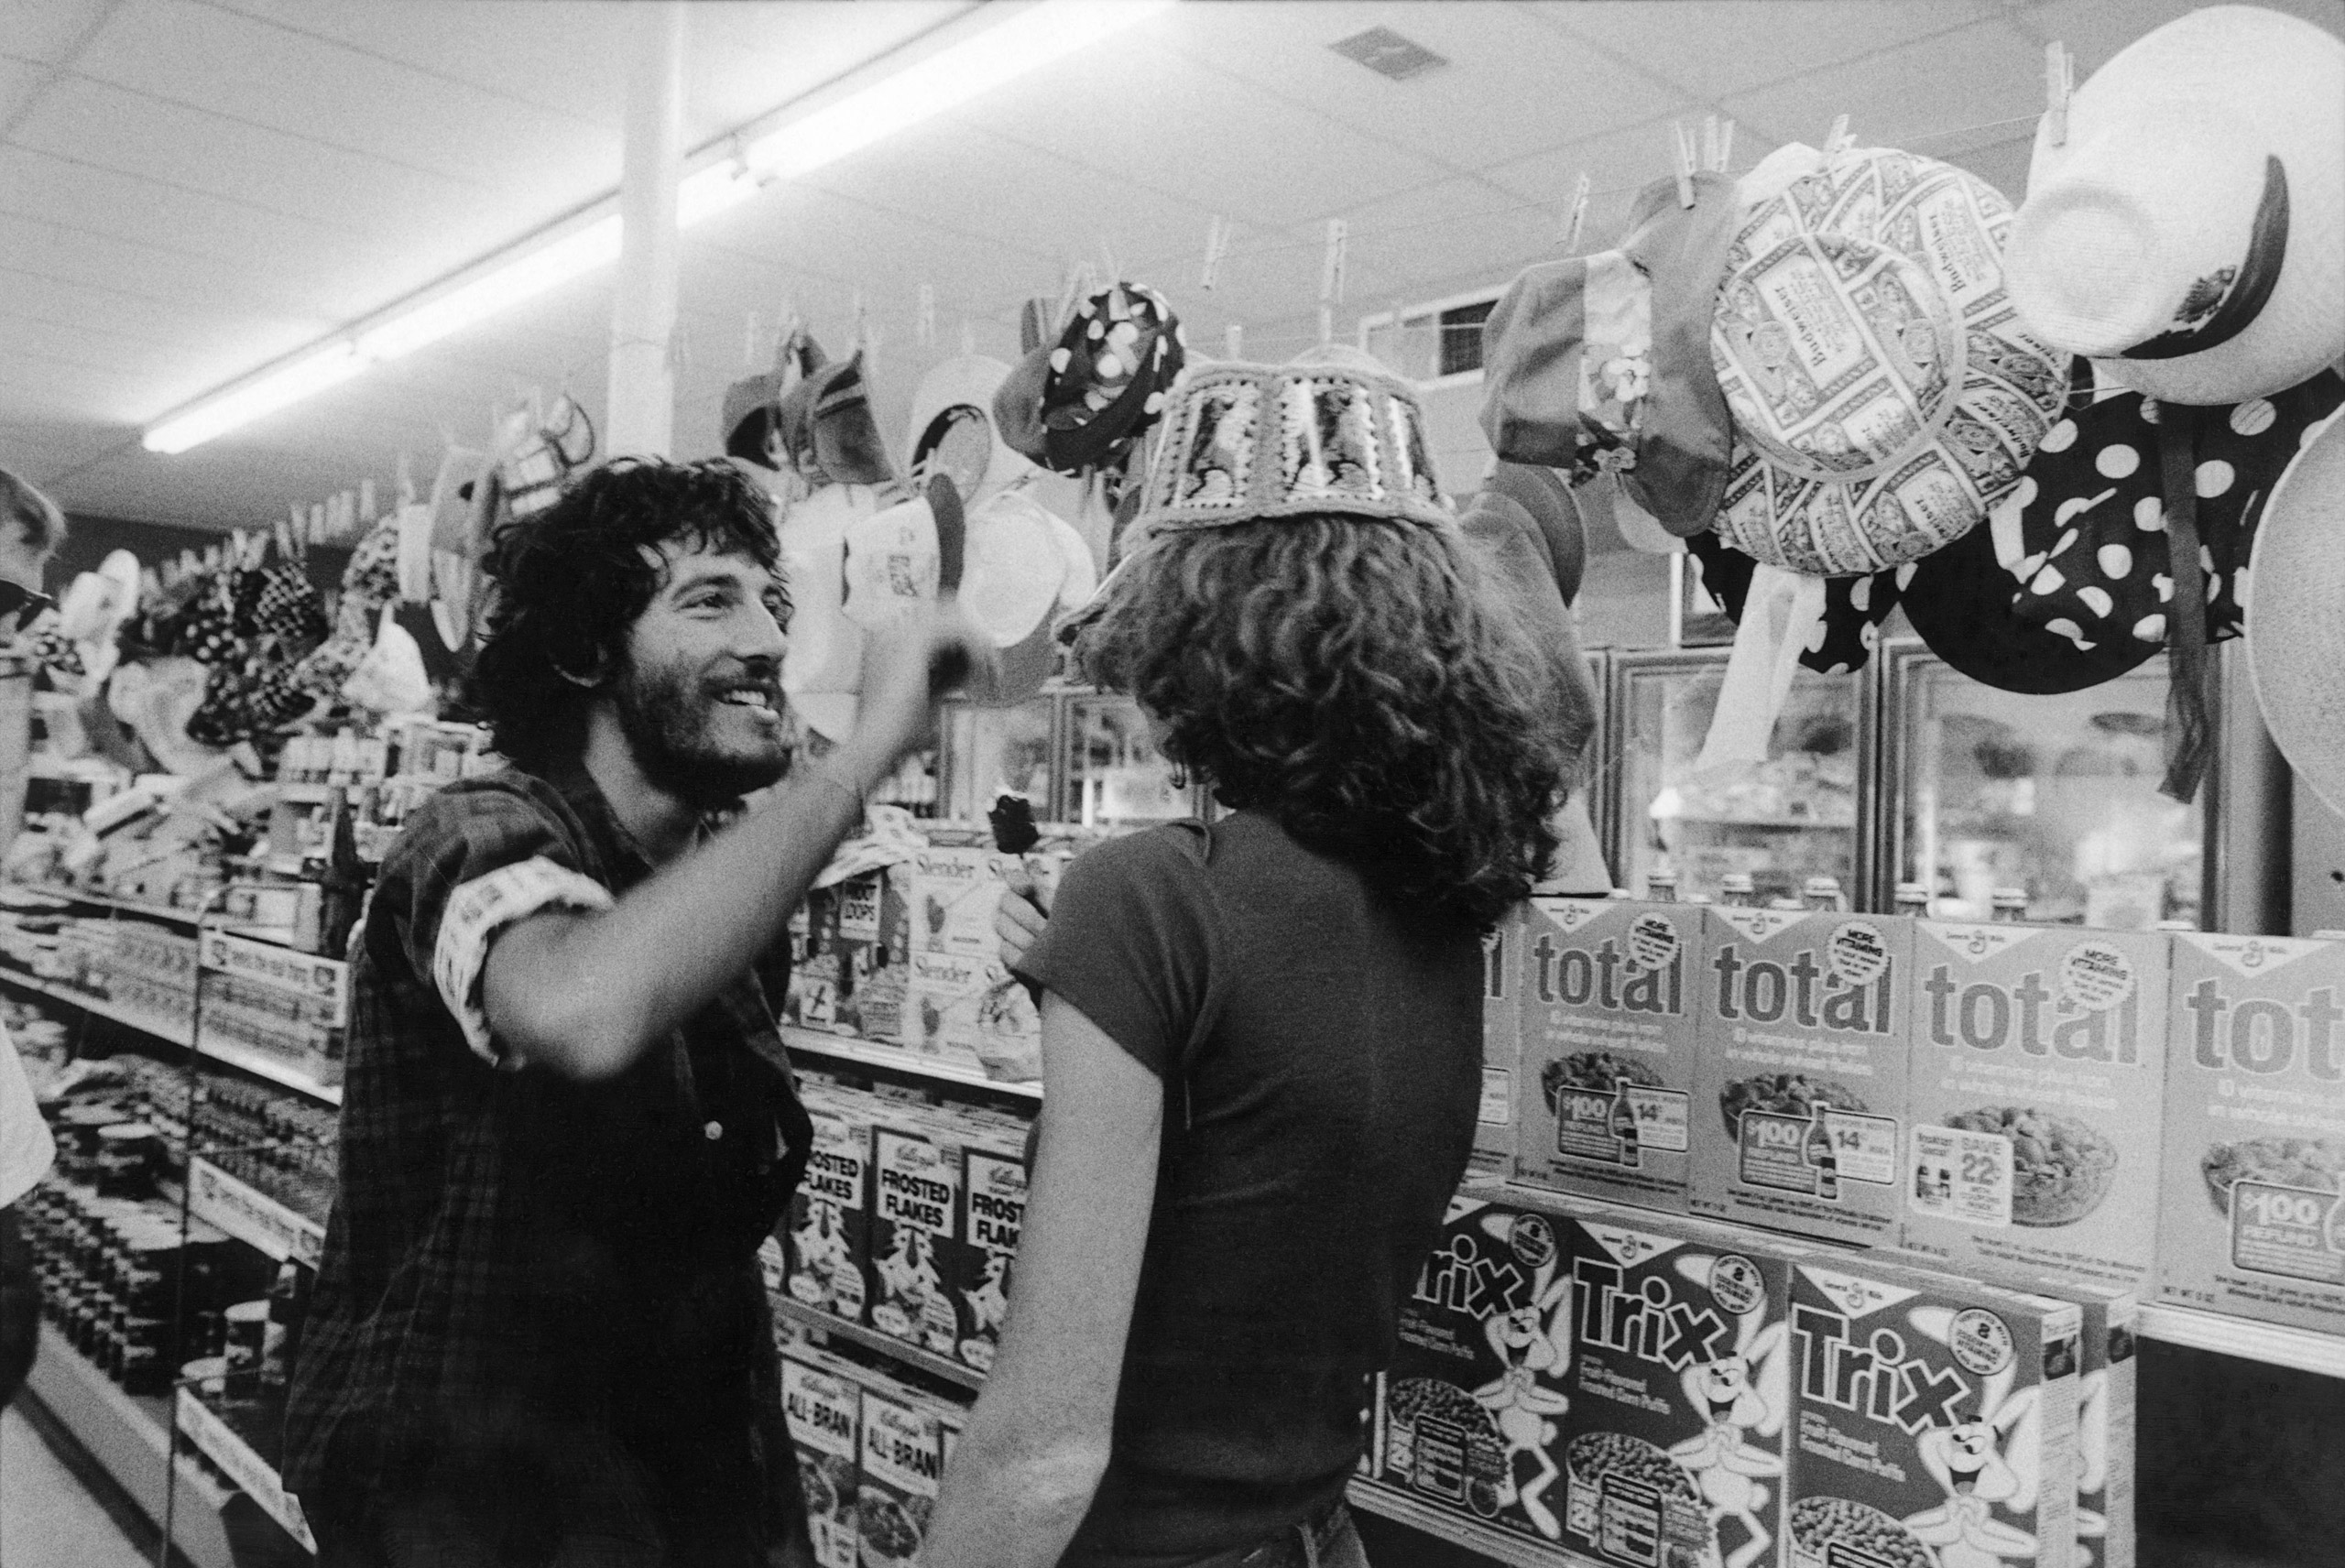 Springsteen with his girlfriend at the time, at one of the many convenience stores the band stopped at while on the road.